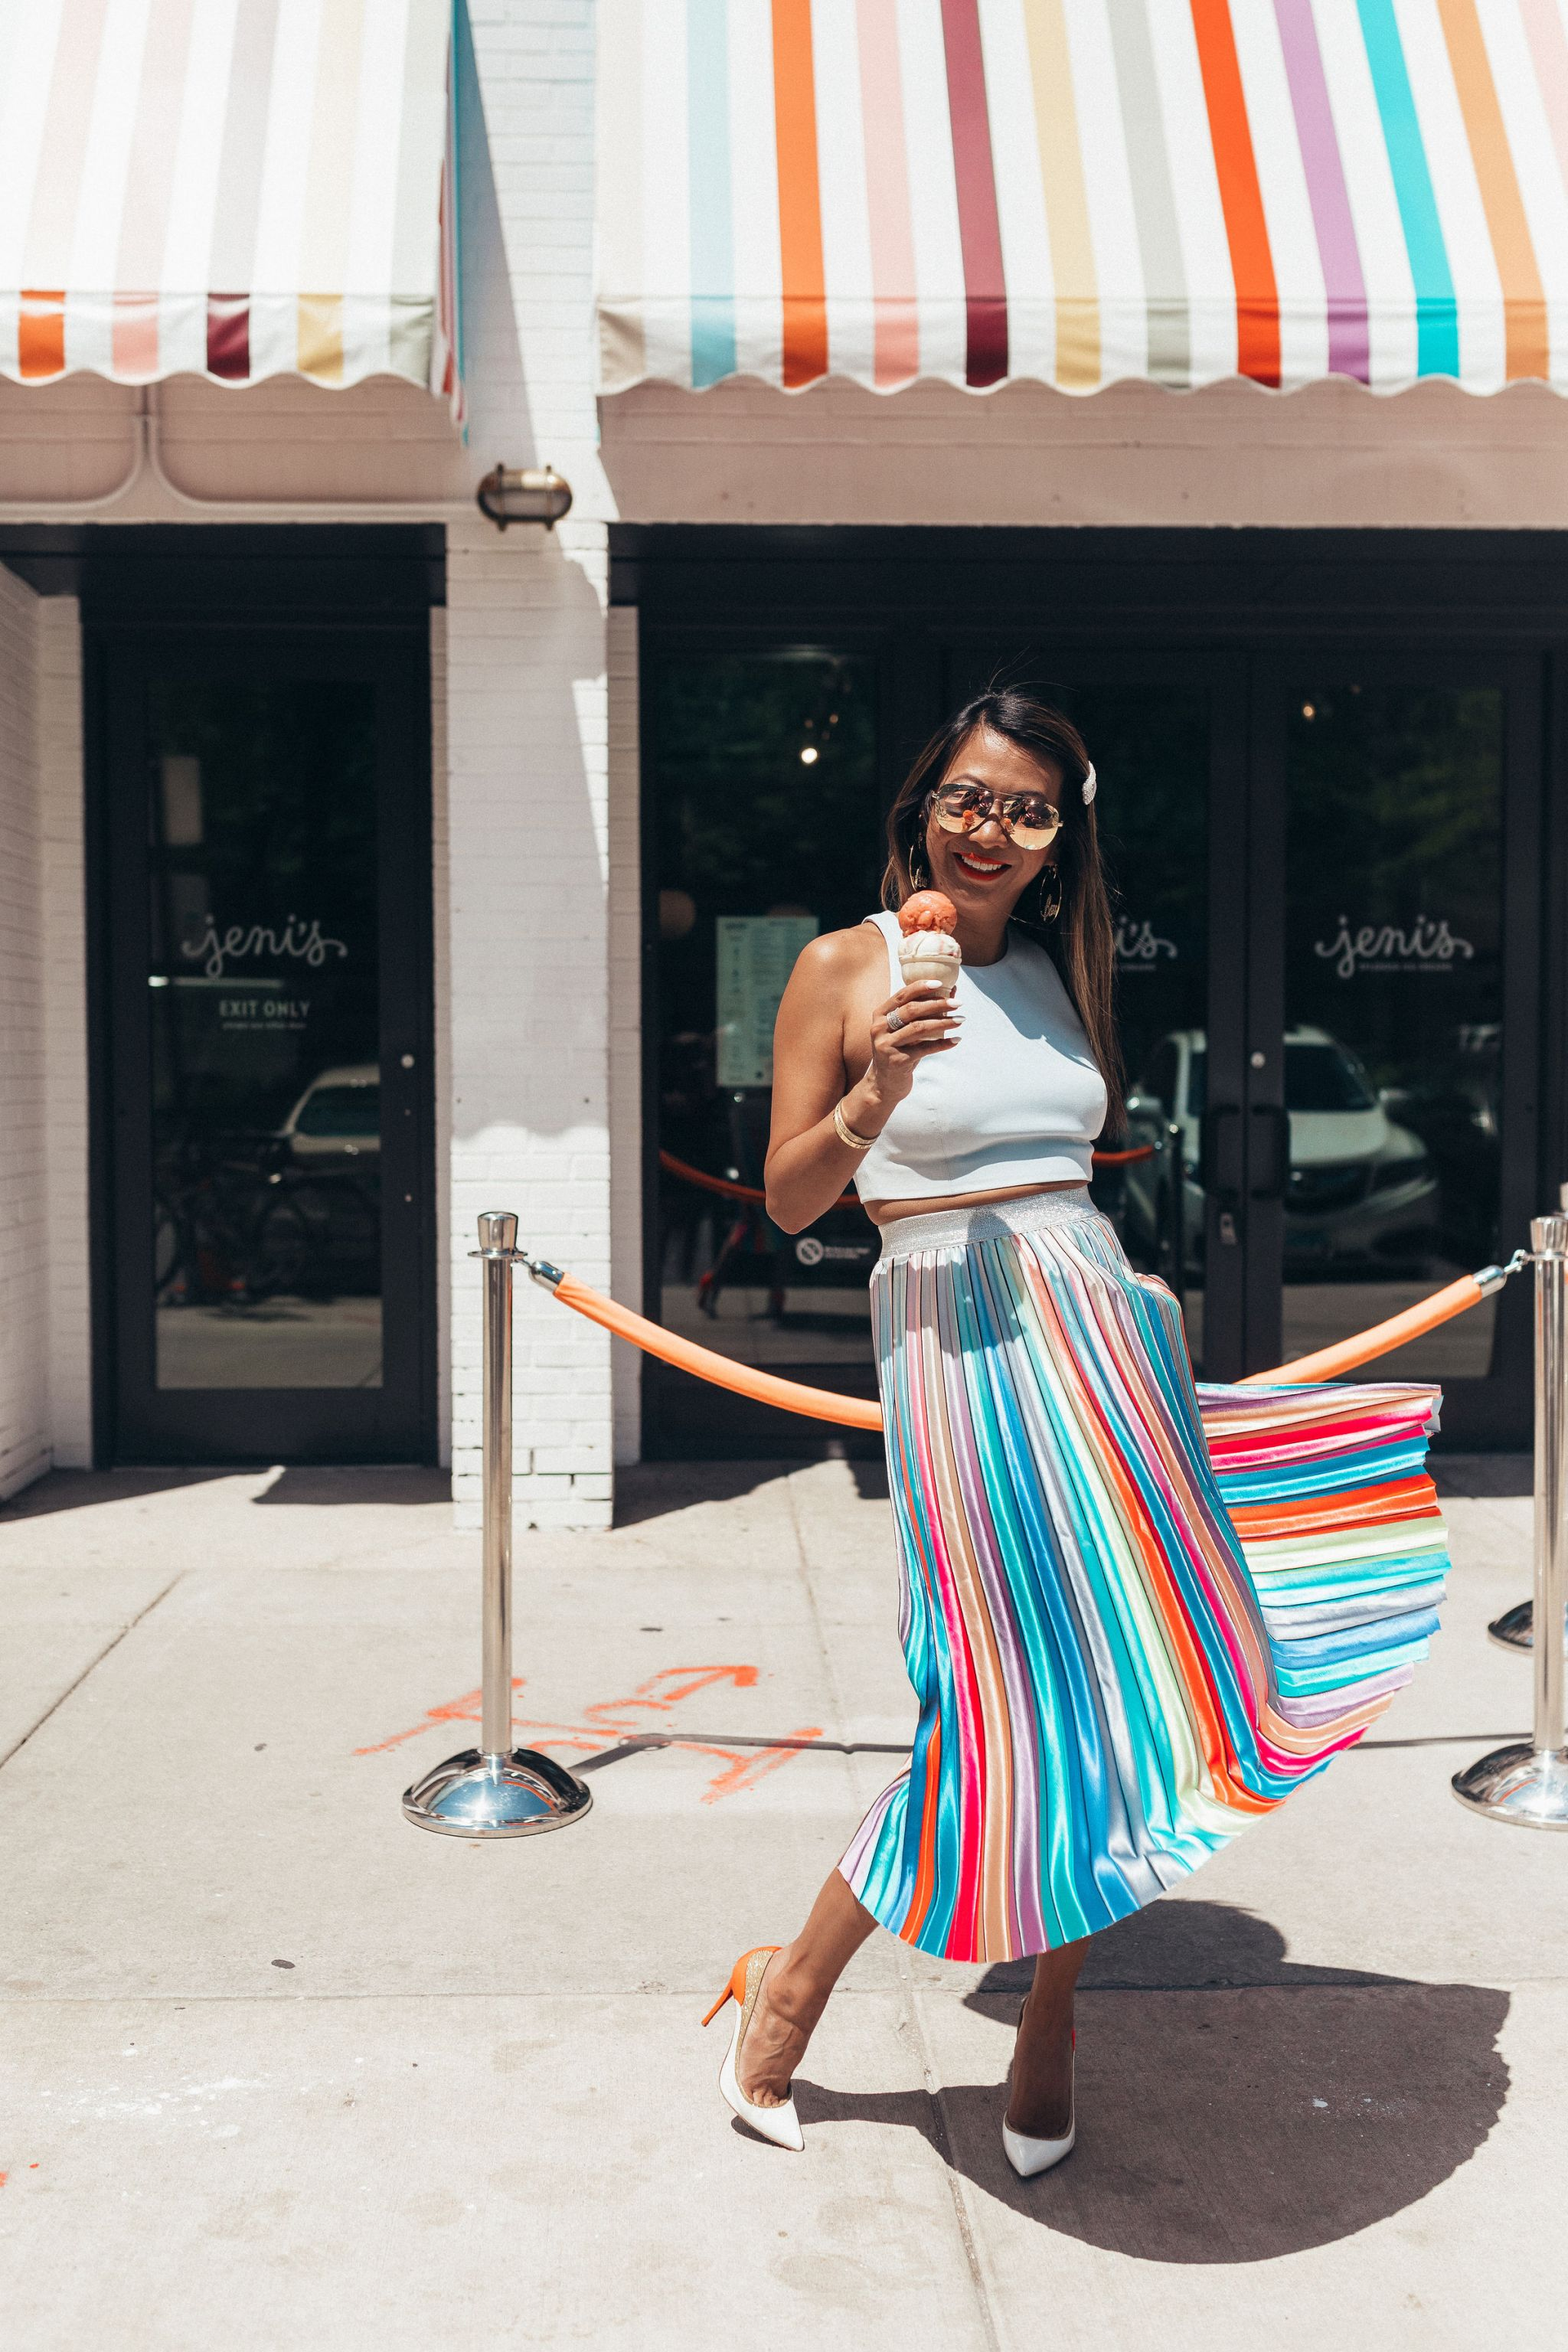 Jennifer worman, red soles and red wine, personal life and struggles, what I am struggling with lately, real talk and personal growth, fears, Akiria Express Your Feelings Midi Skirt, Jeni's Ice Cream Chicago, Chicago blogger, rainbow skirt outfit, pleated skirt outfit